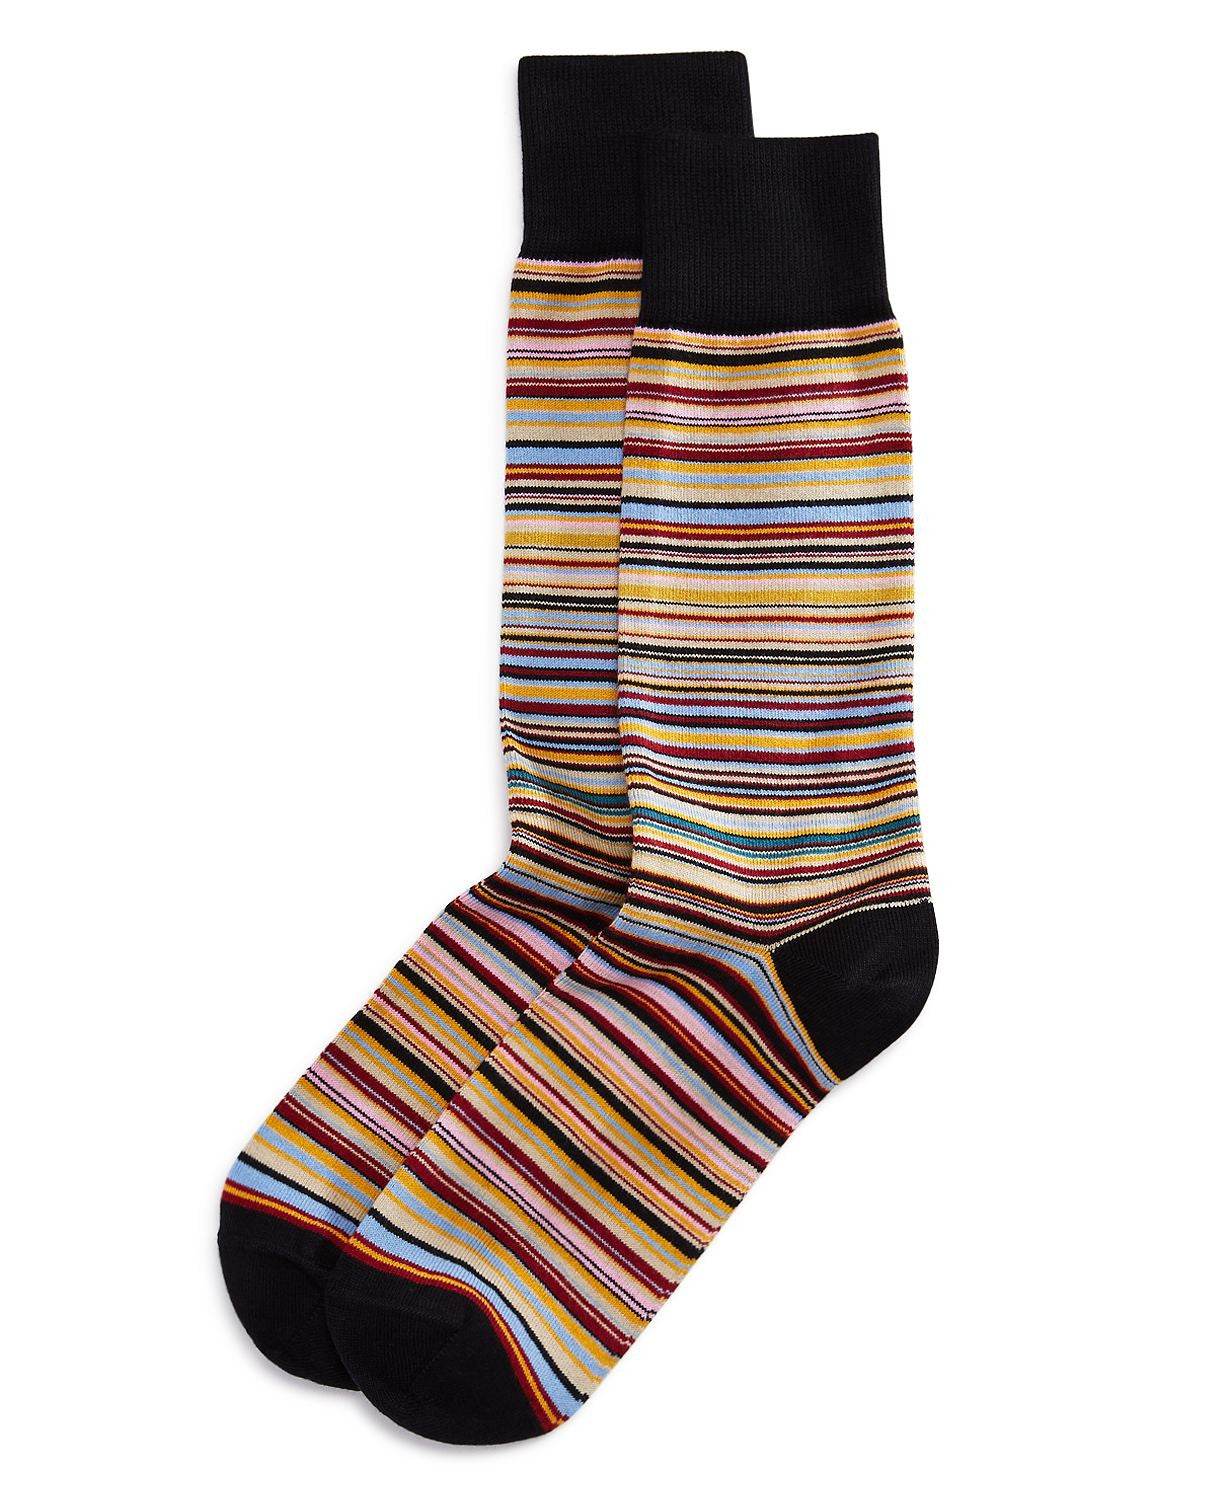 Paul Smith Multicolored Stripe Socks Black Multi